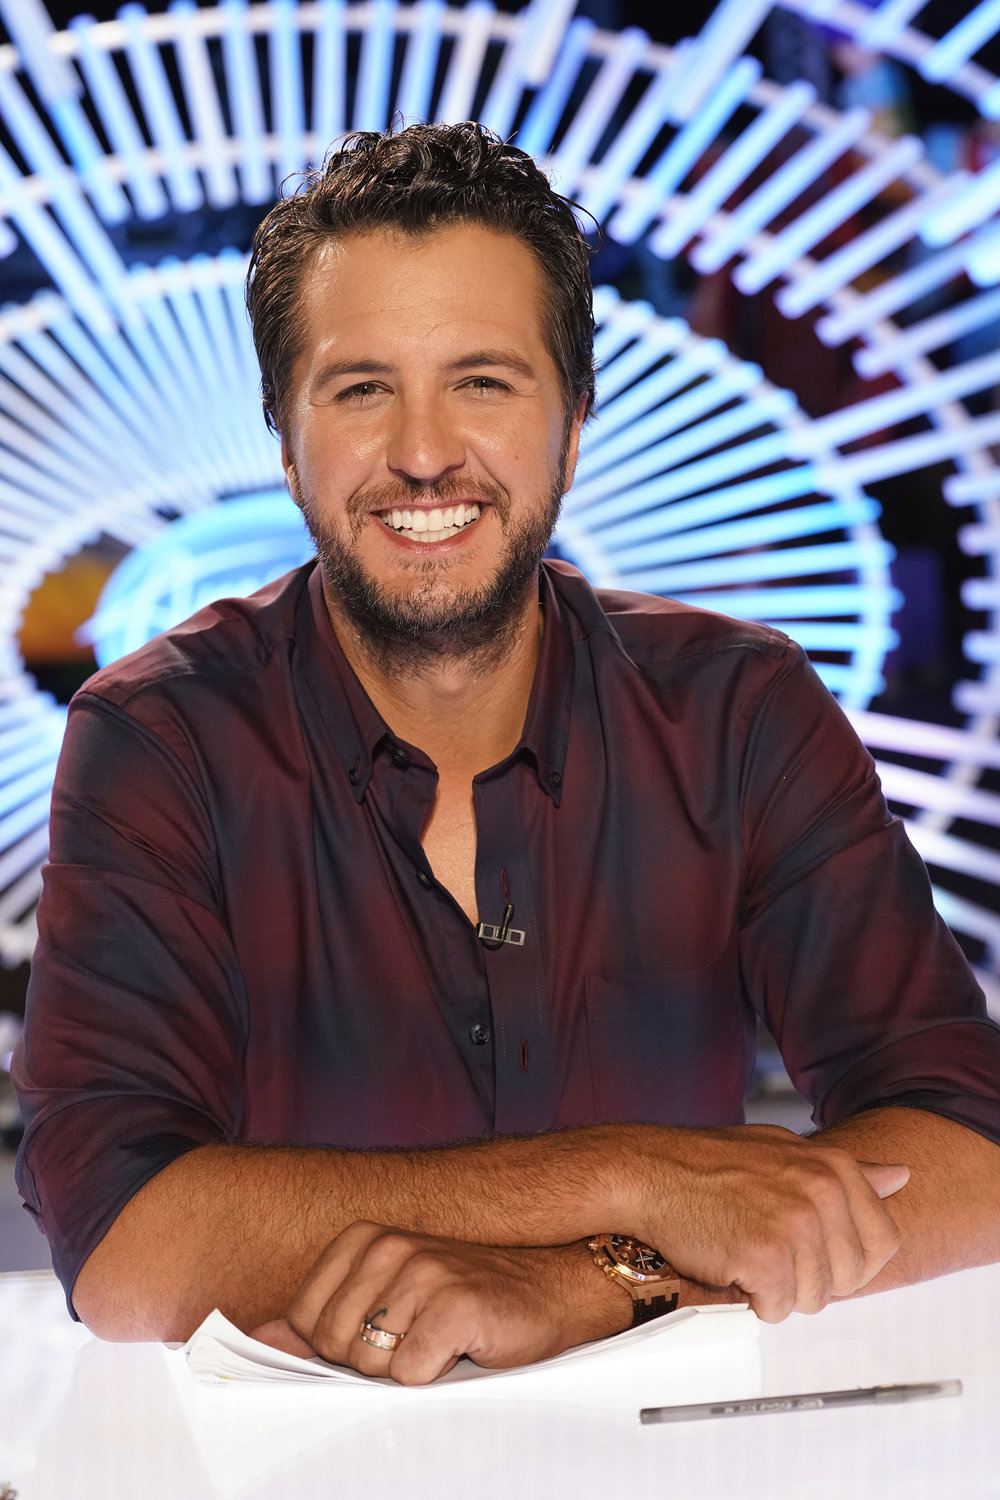 Luke Bryan Photo: ABC/Alfonso Bresciani